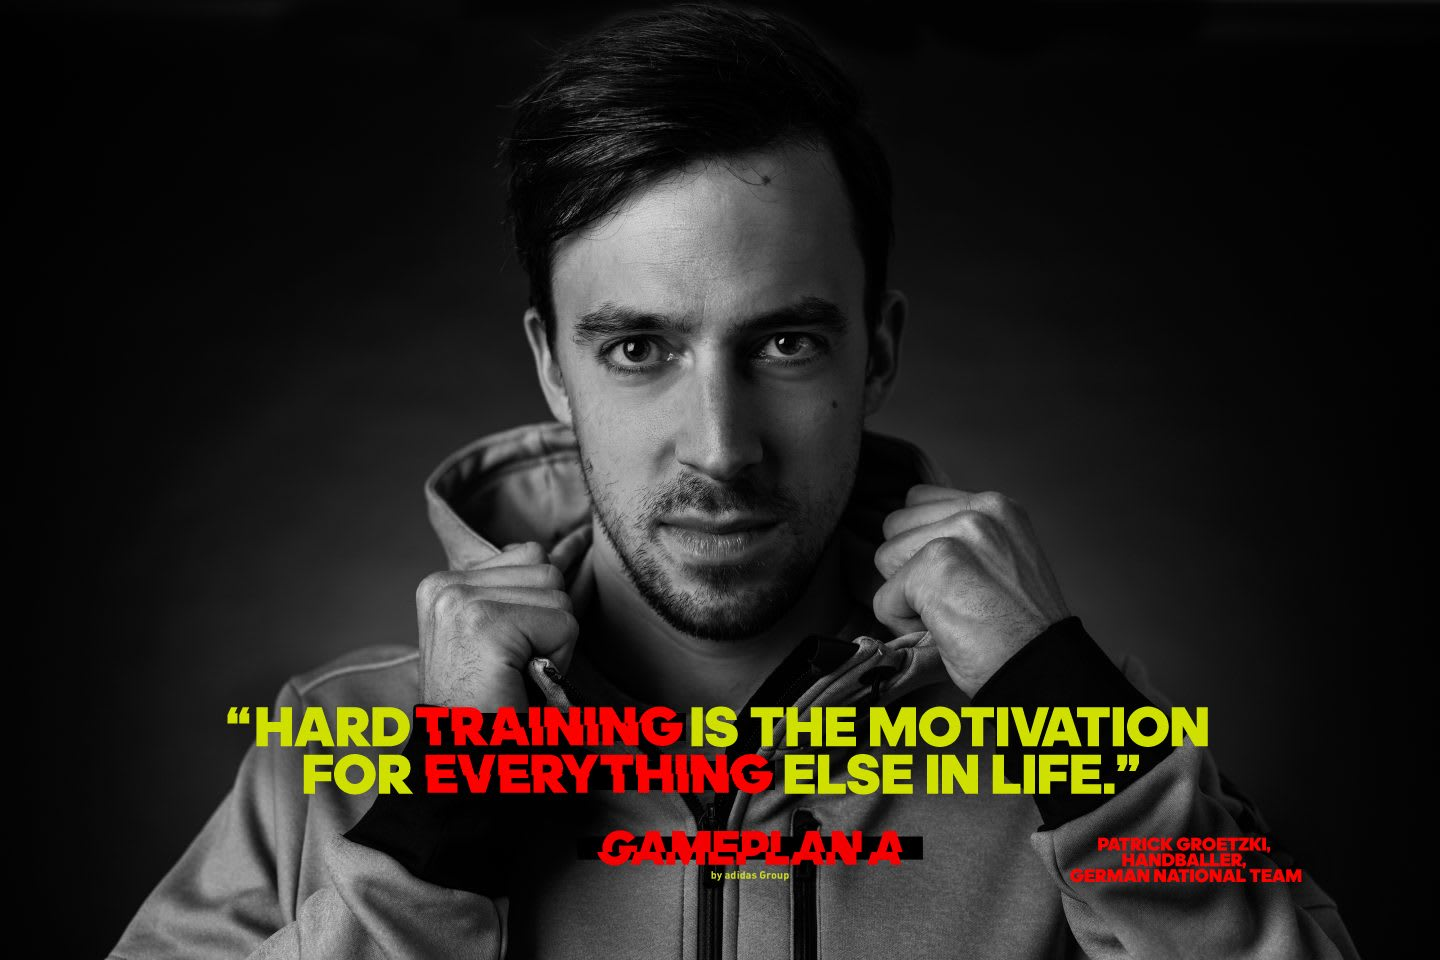 patrick groetzki handball german national team quote